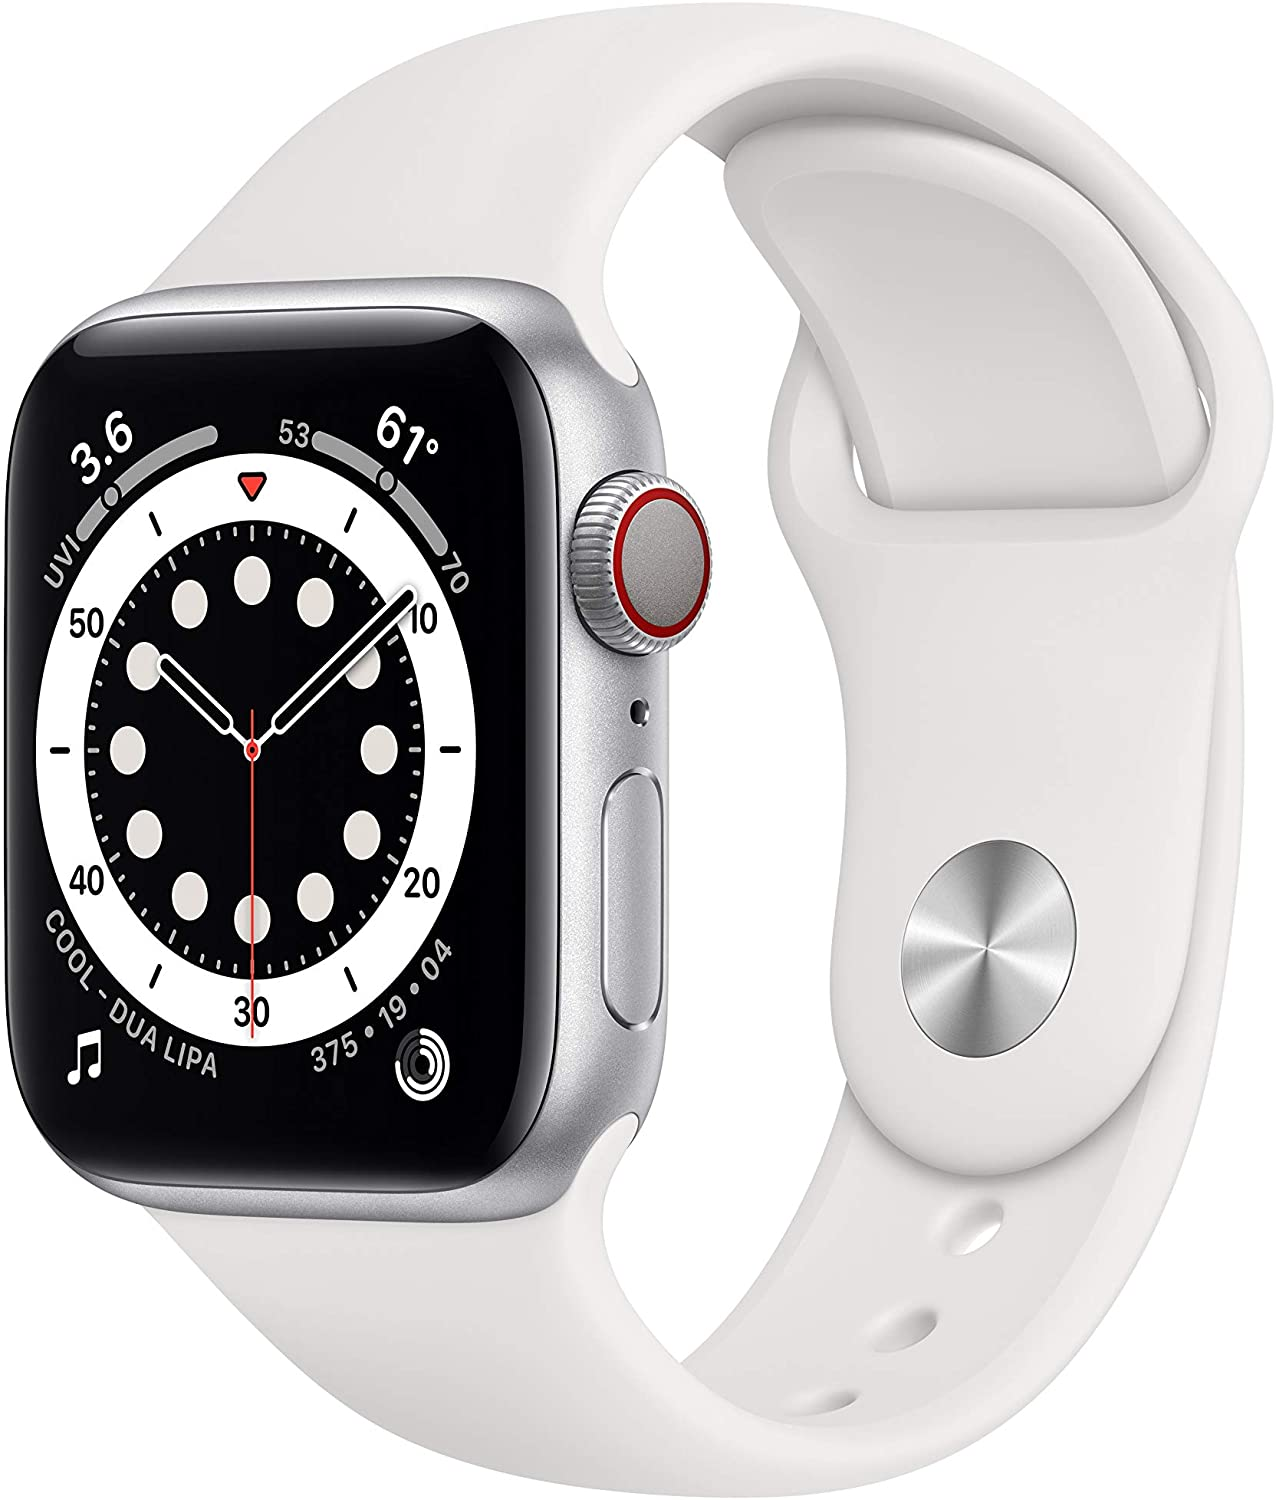 New AppleWatch Series 6 (GPS + Cellular, 40mm) - Silver Aluminum Case with White Sport Band